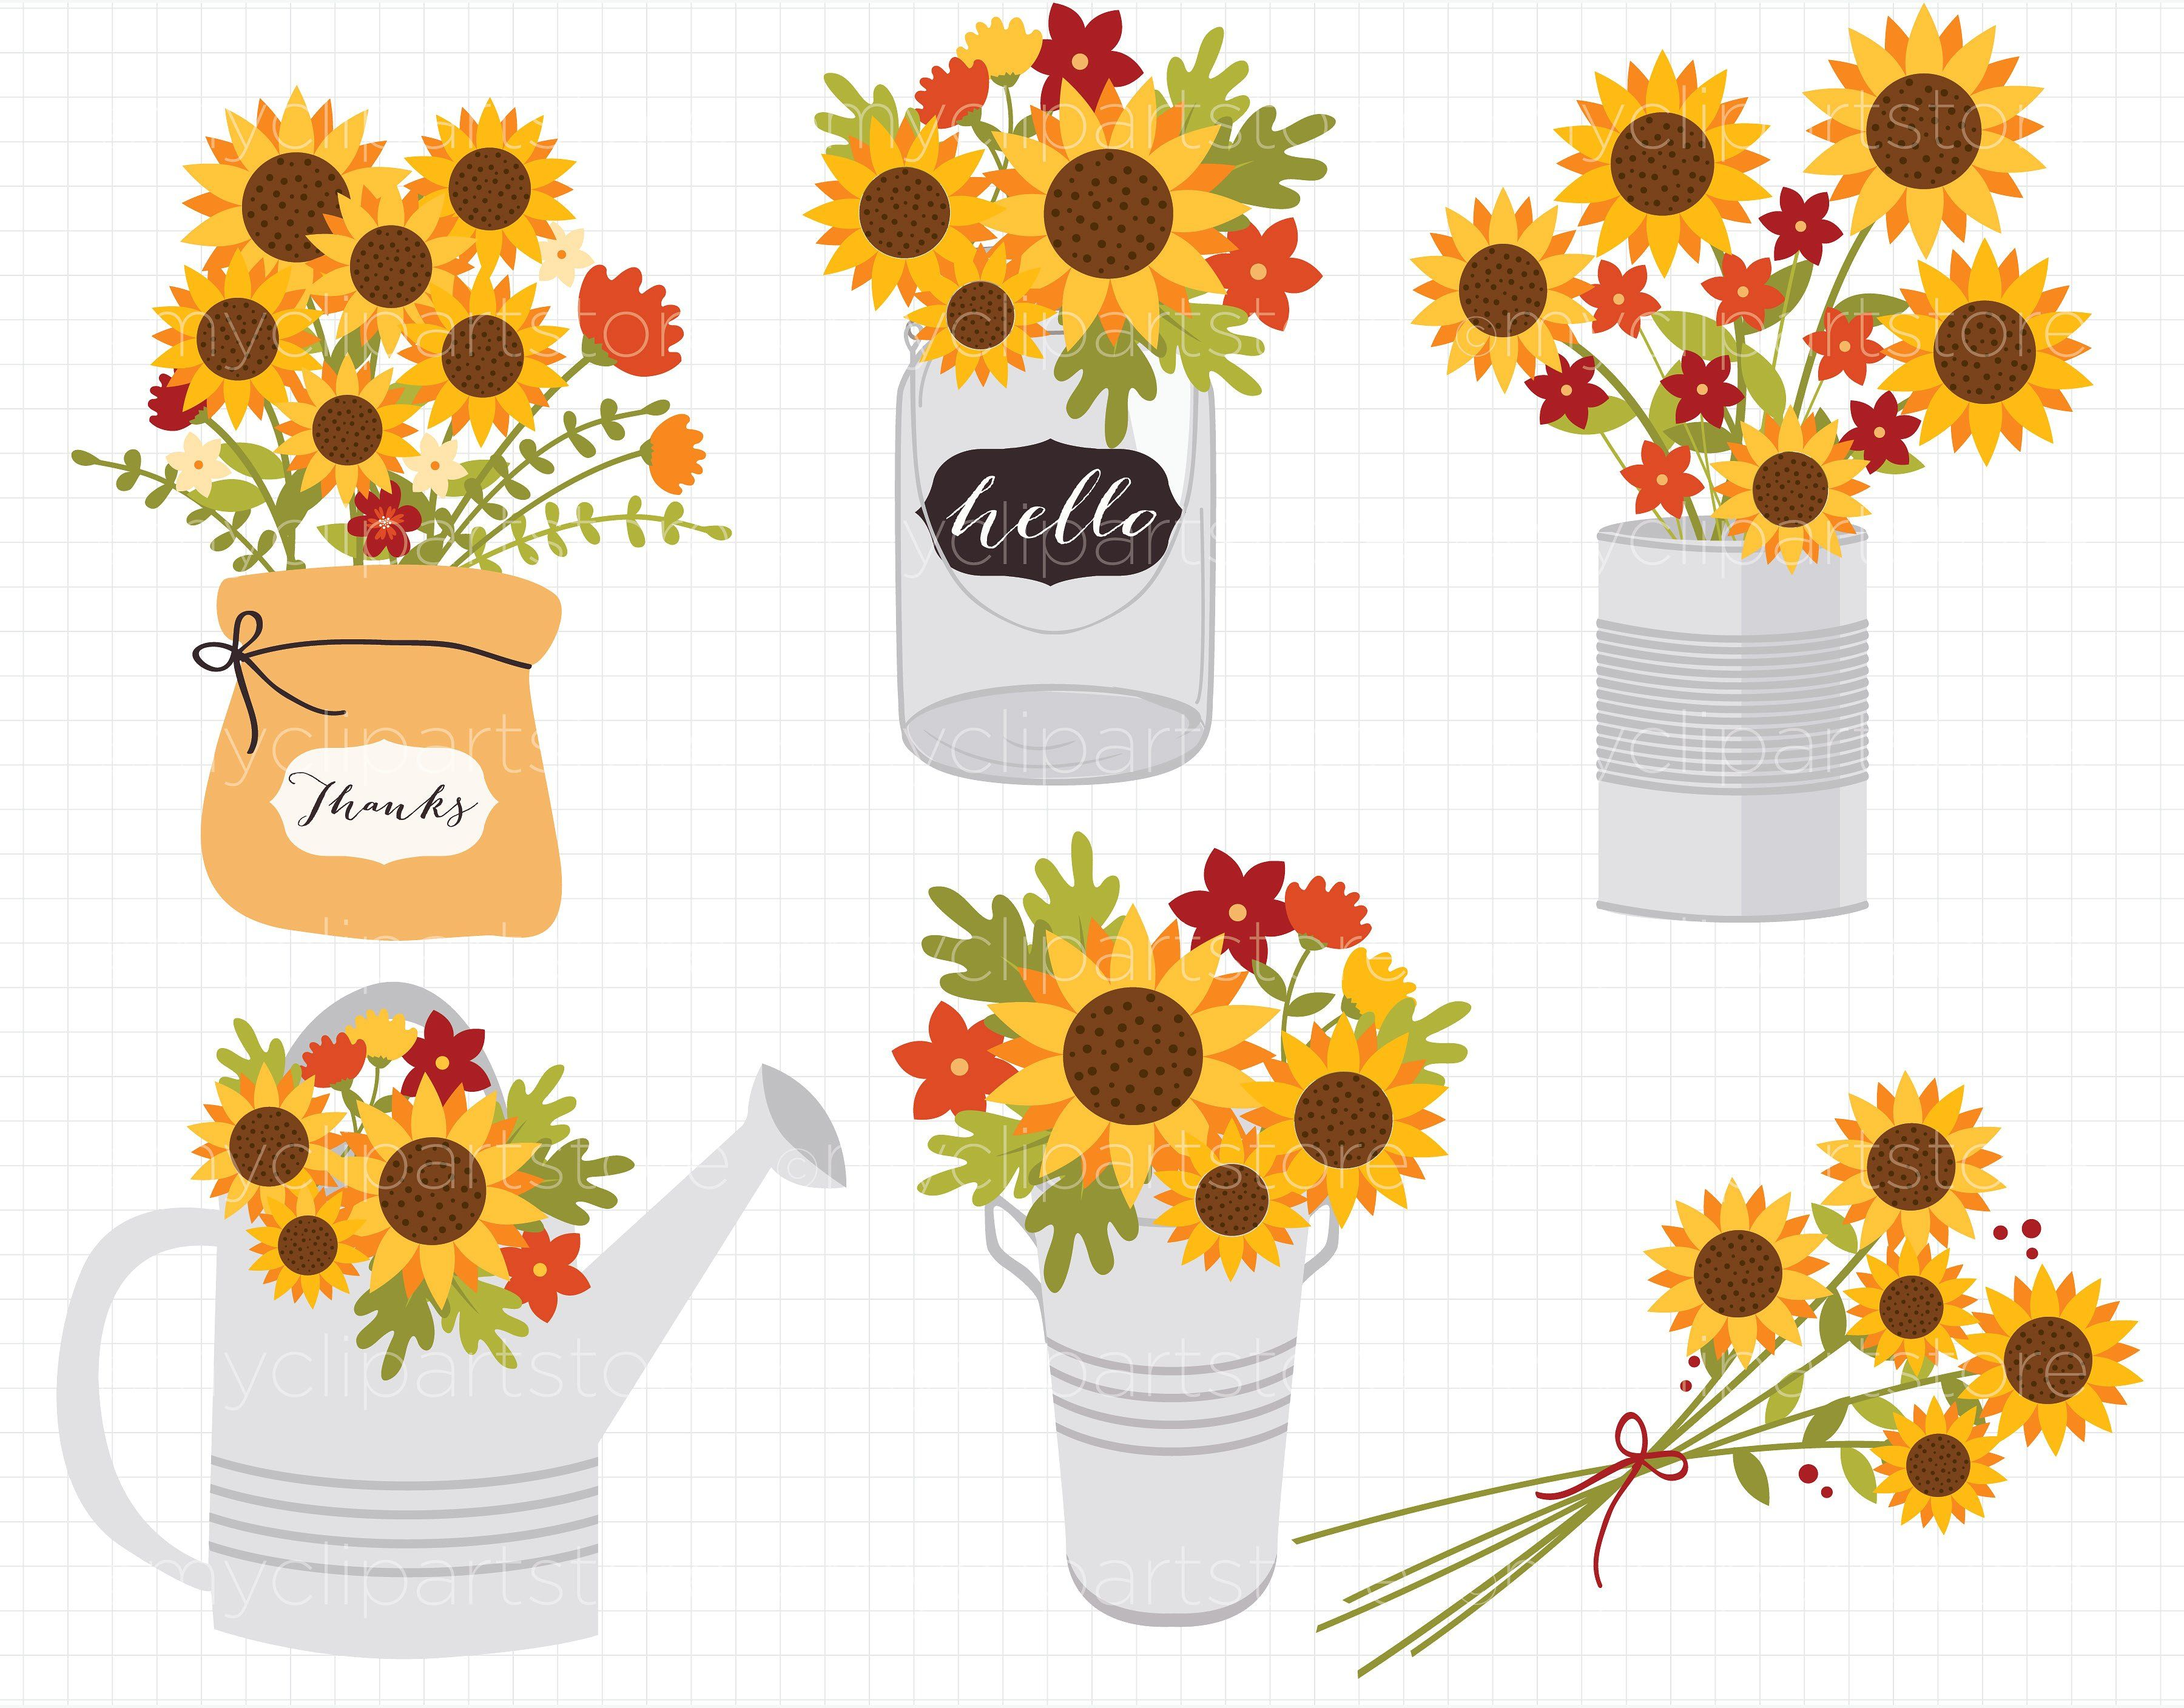 Thanksgiving clipart flowers download Sunflowers, Fall Flowers Clipart #AUTUMN#THANKSGIVING ... download